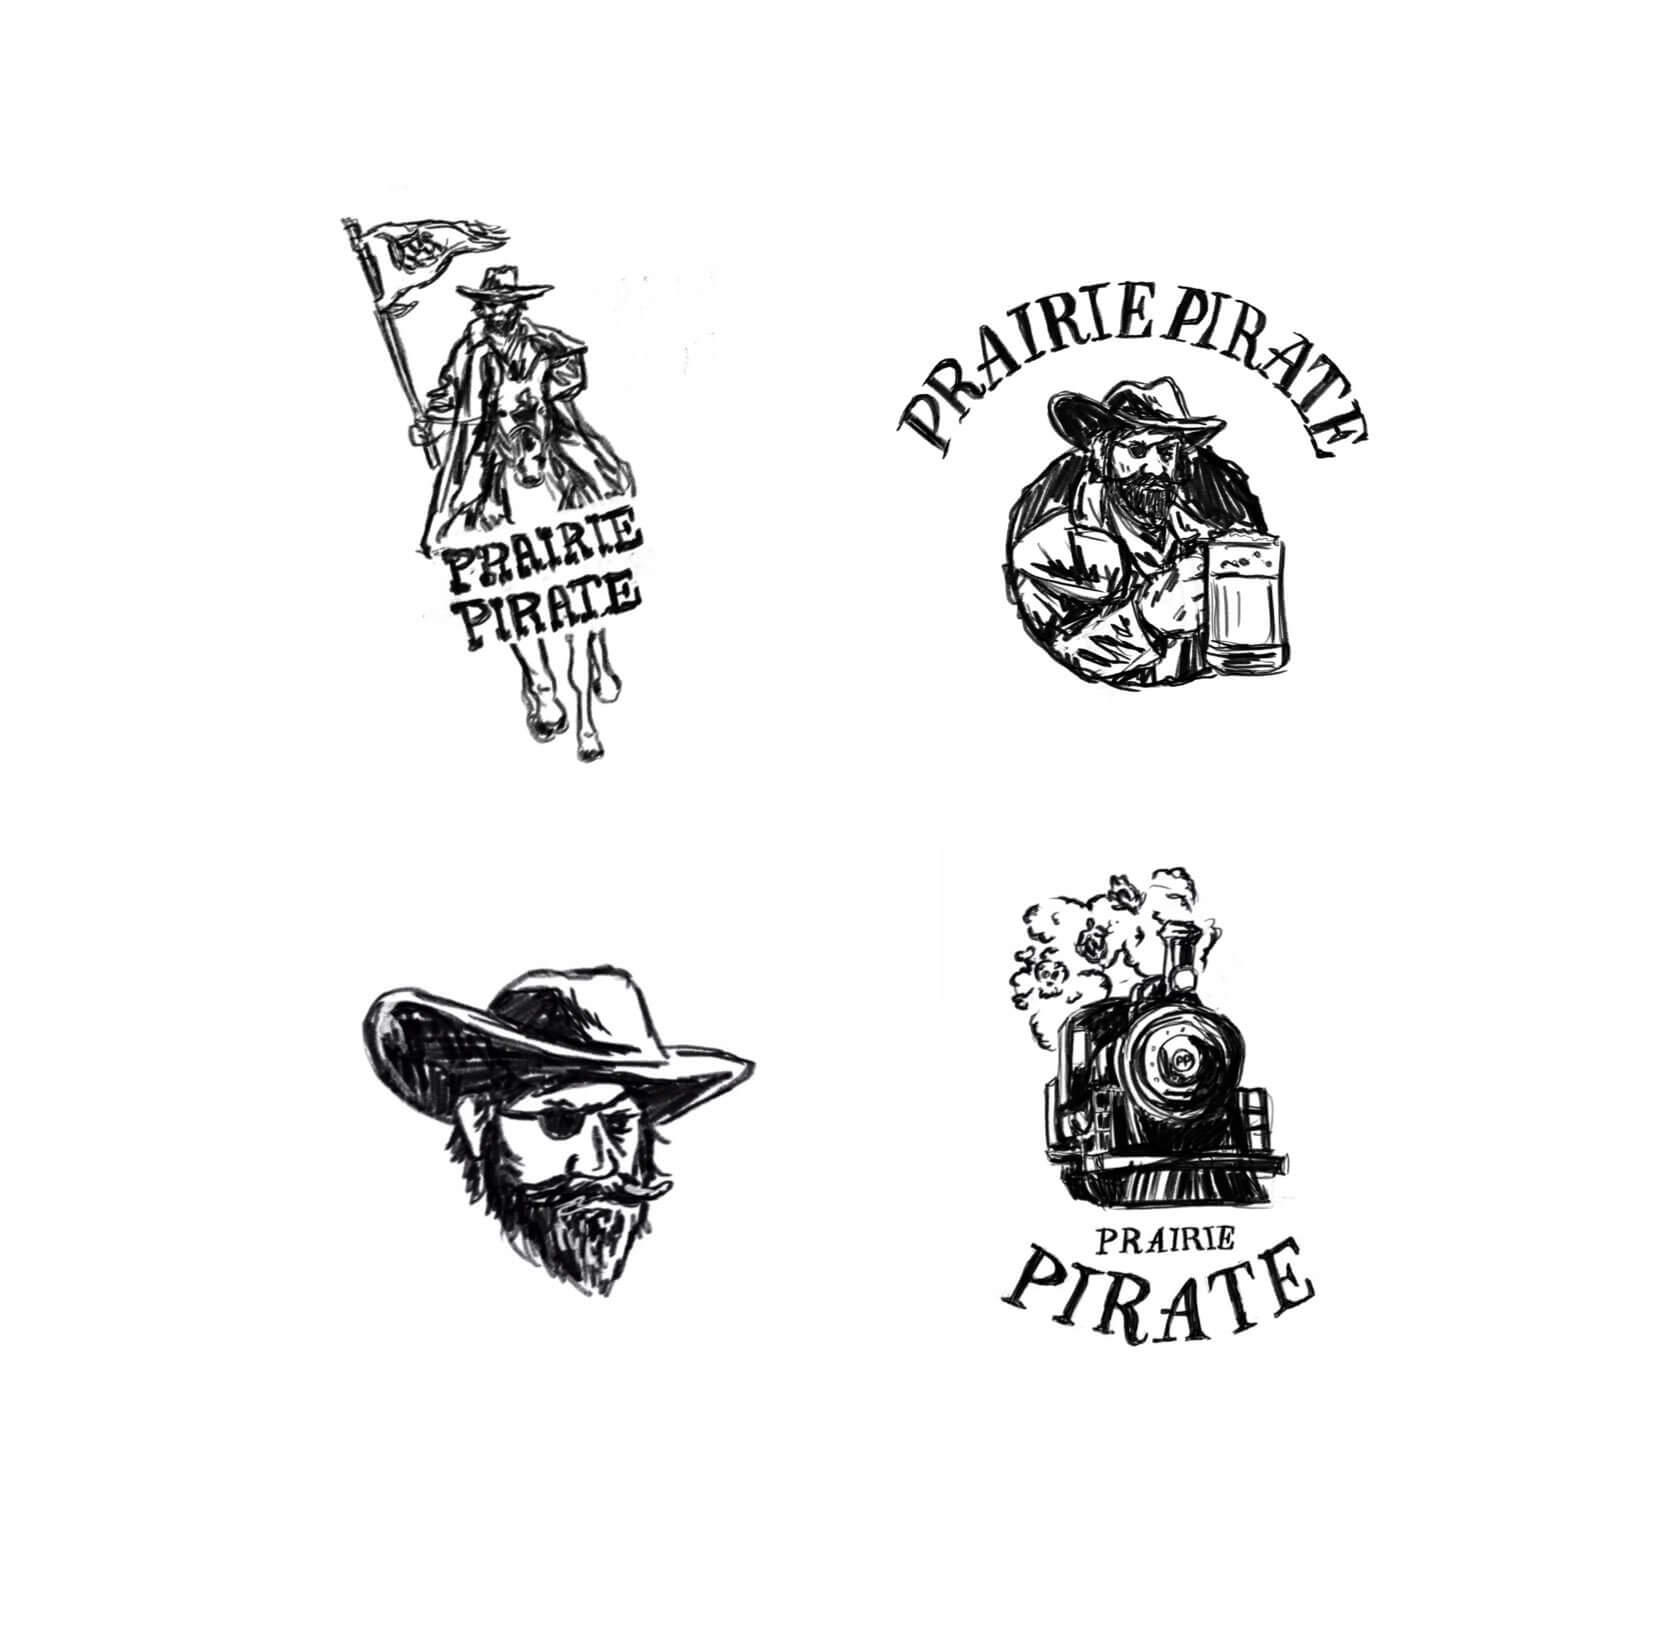 Prairie pirate apparel illustration concepts